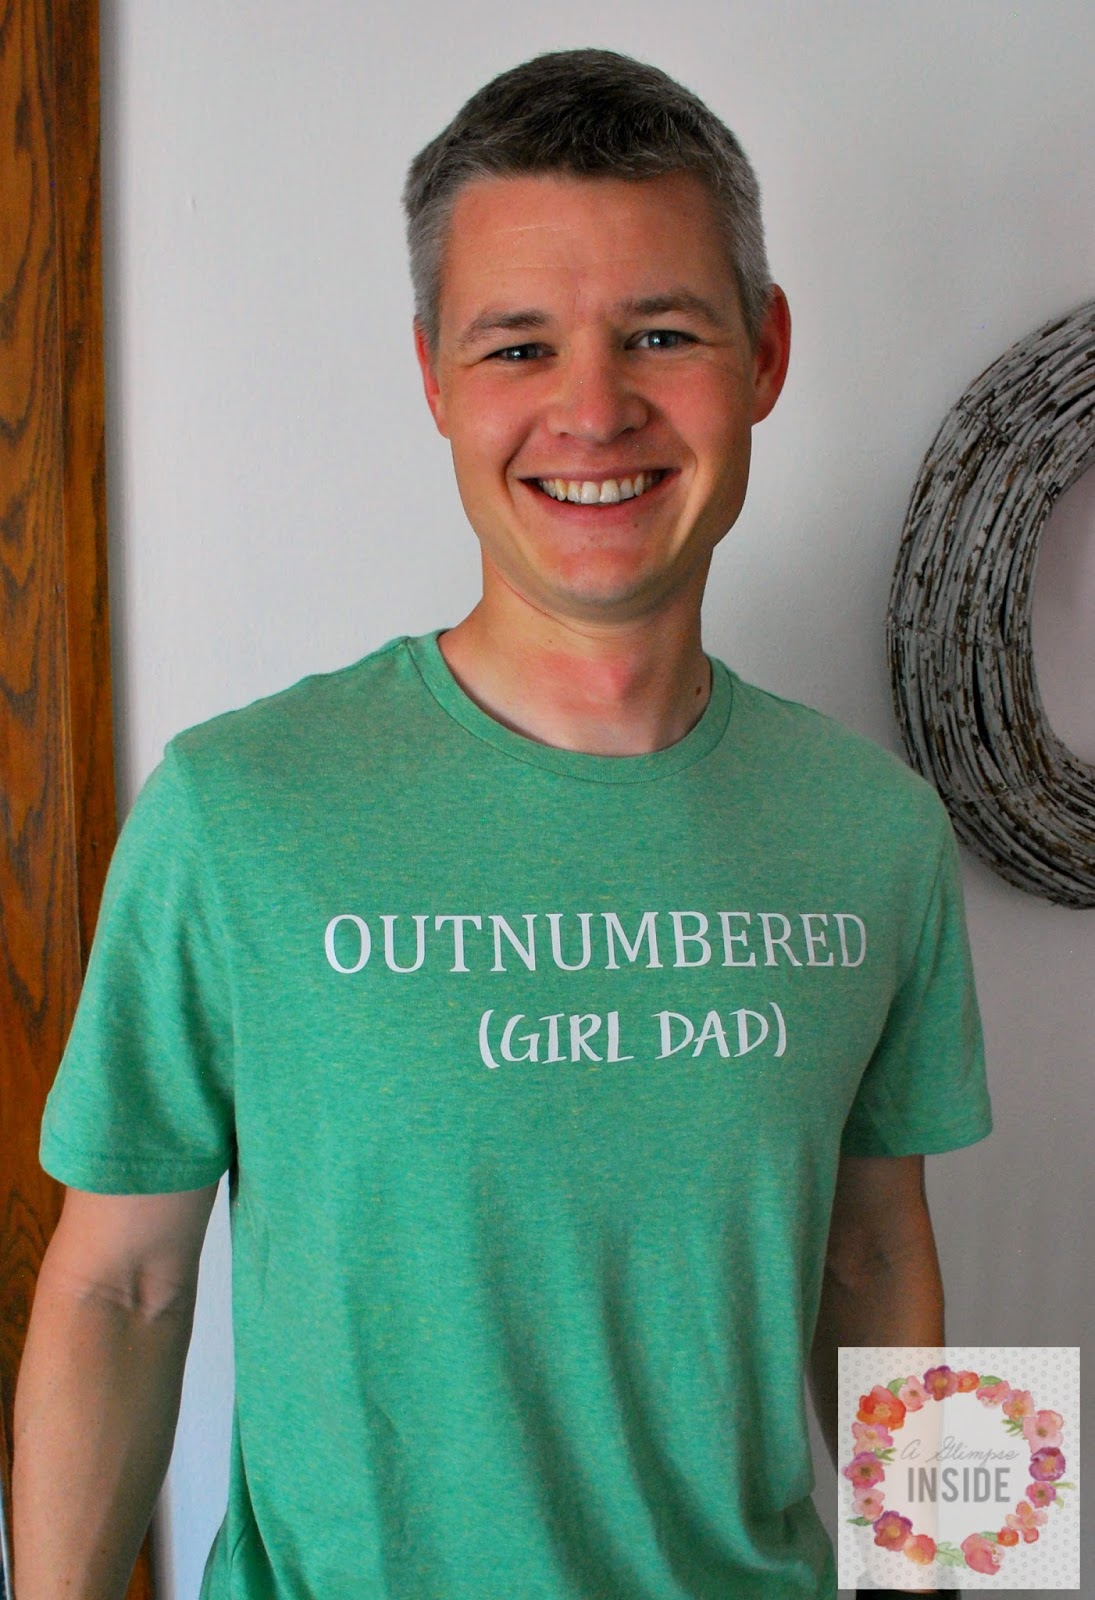 3c7448bc We gave the shirt to Travis as his Father's day gift and he loved it.